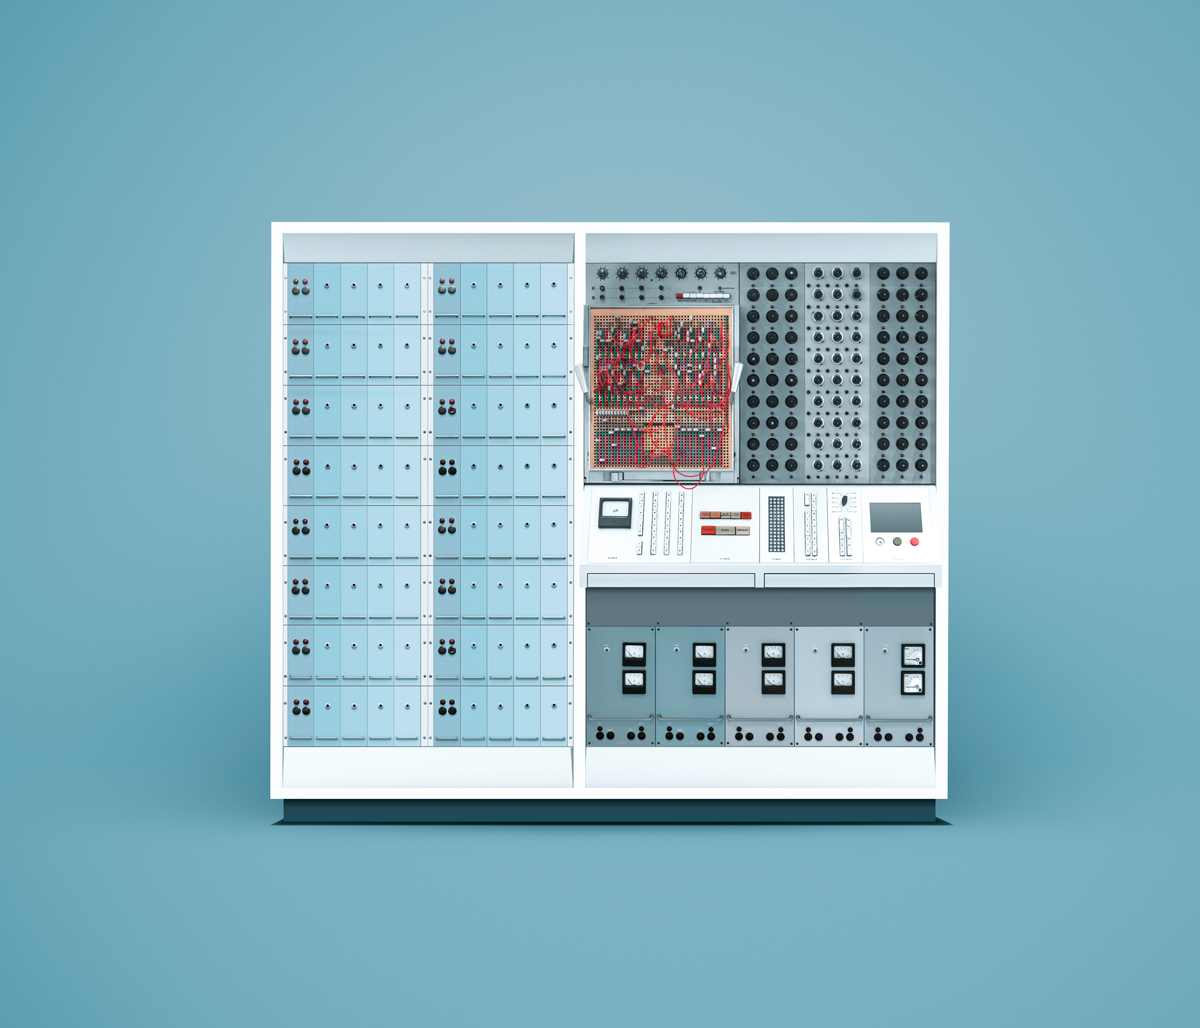 The ENDIM 2000 analog computer, a tube-based design developed and manufactured in the former German Democratic Republic